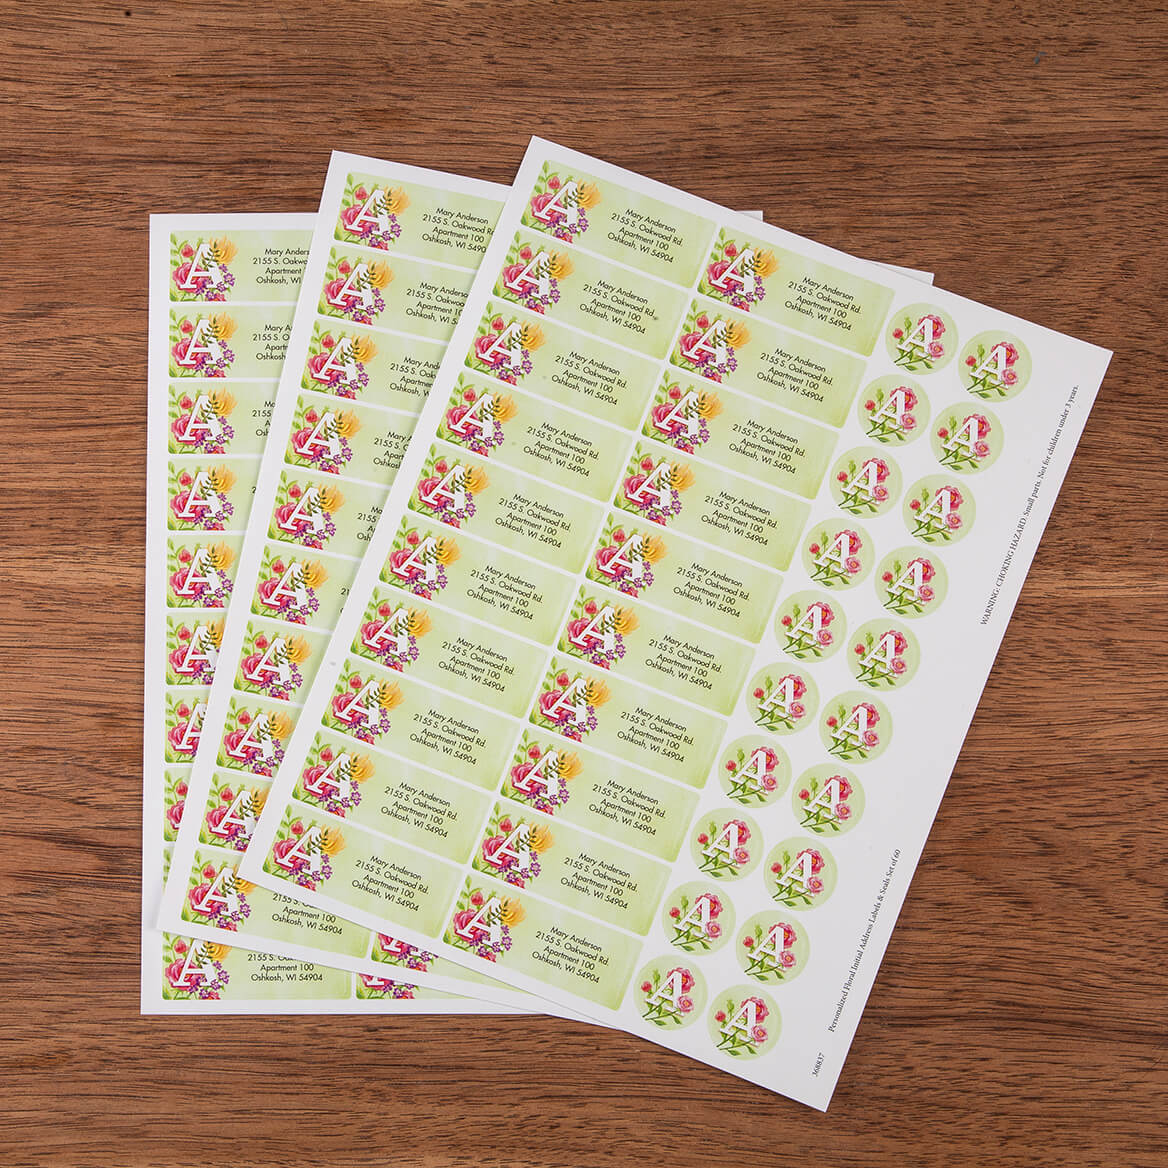 Personalized Floral Initial Address Labels & Envelope Seals Set of 60-368837